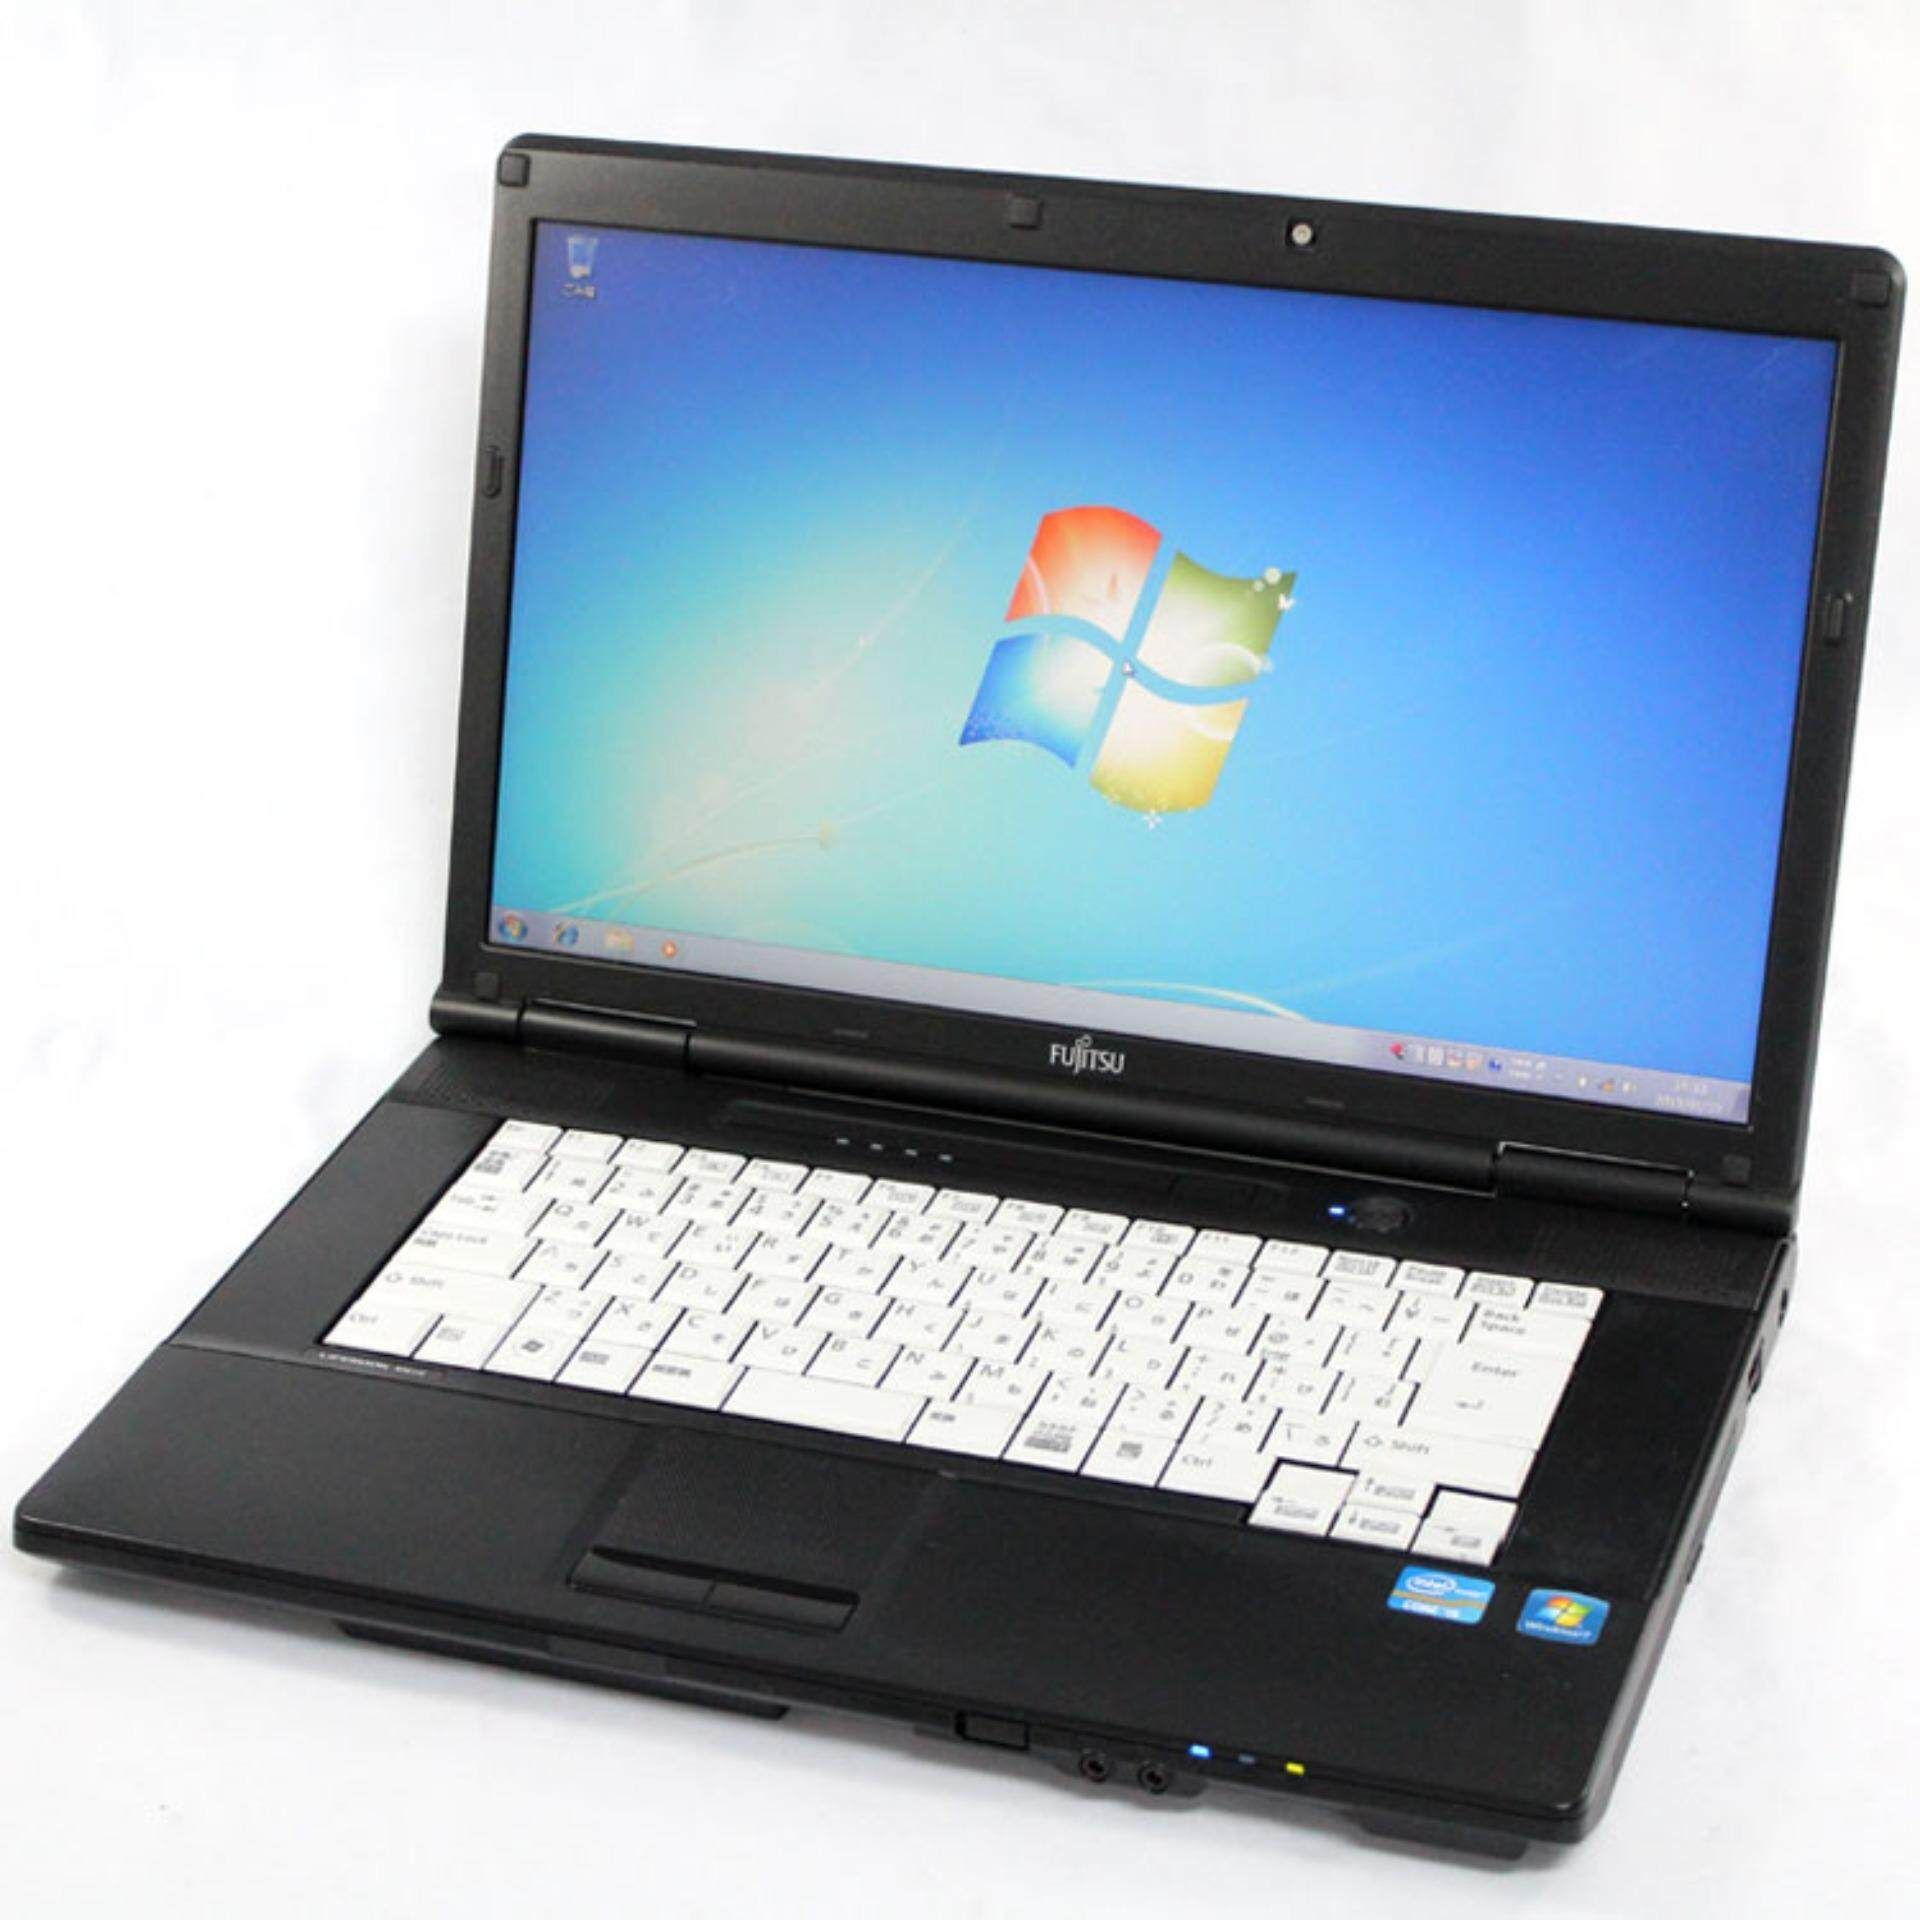 Fujitsu Lifebook A561 / i3-2ND GEN / 2GB RAM / 250GB HDD / Window 7 / Jap Keyboard ( Refurbished ) Malaysia